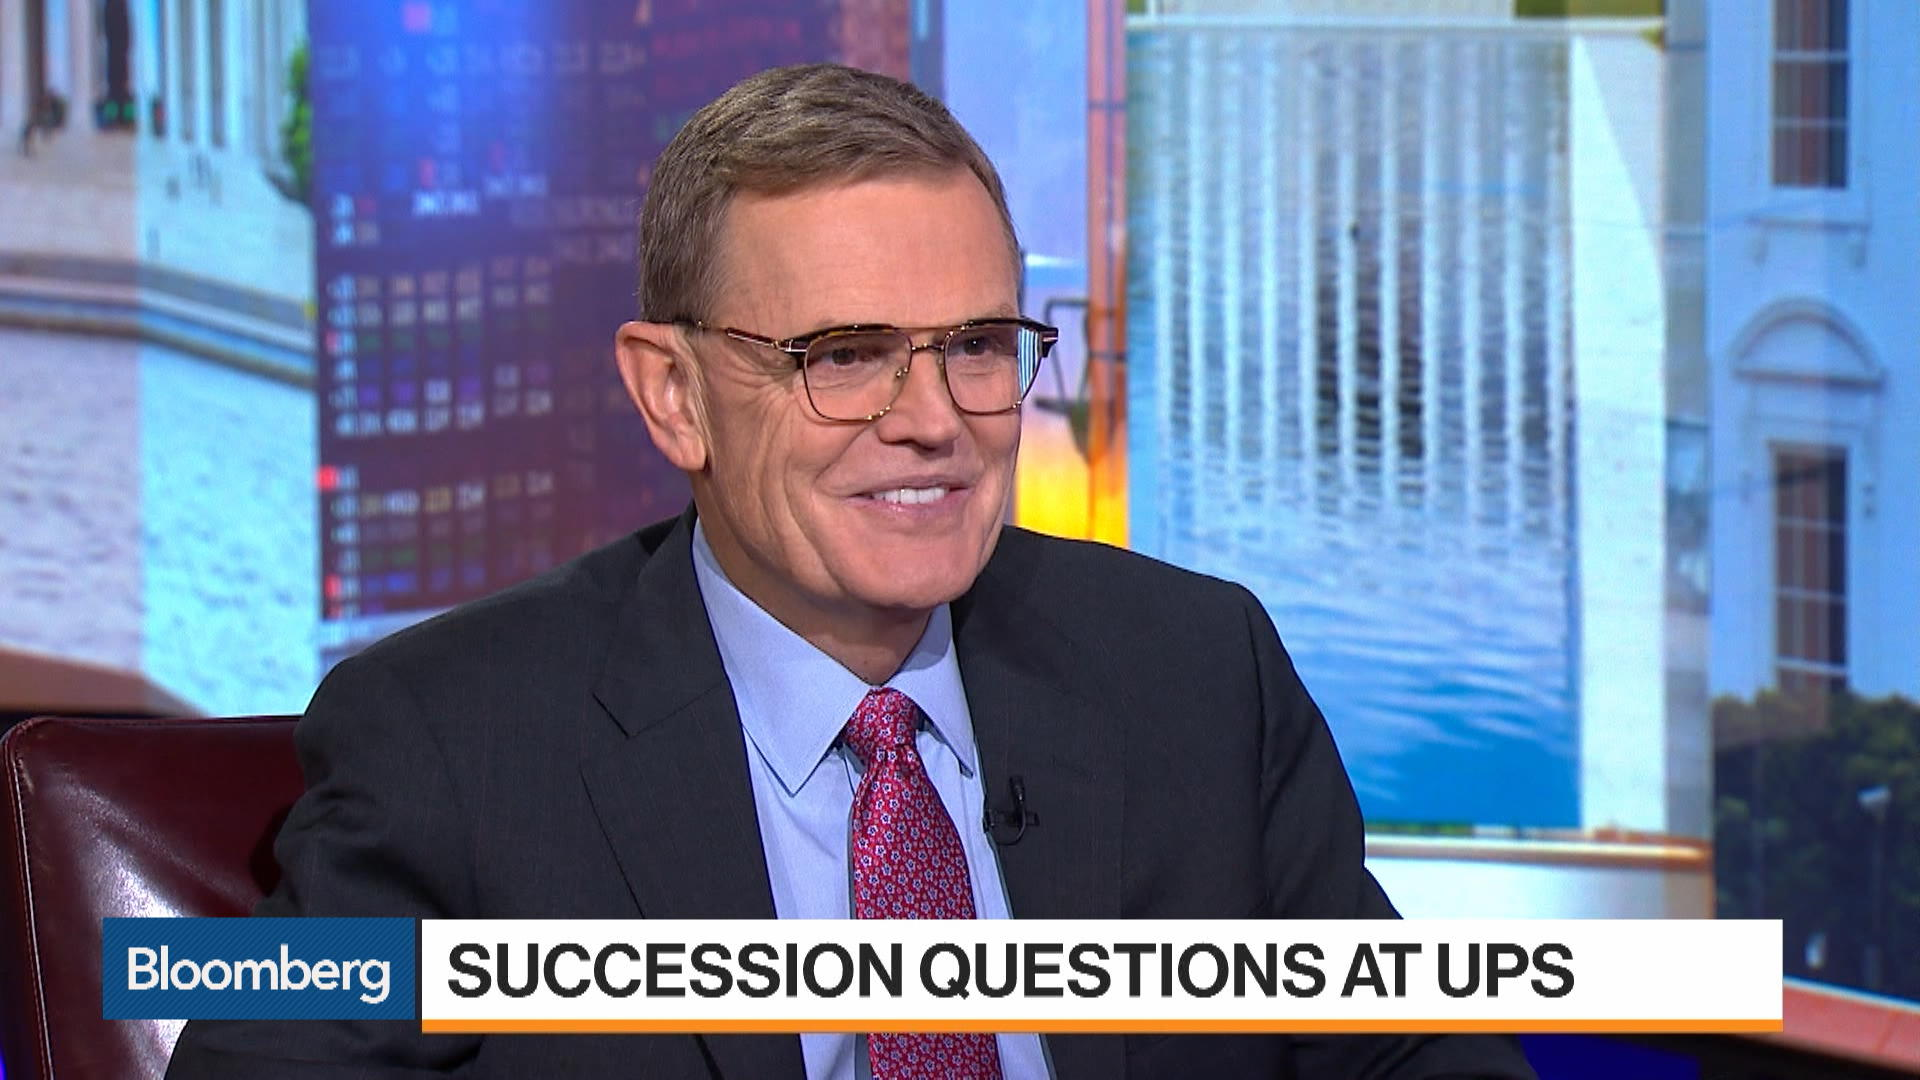 UPS CEO David Abney Succession Plan, COO's Retirement